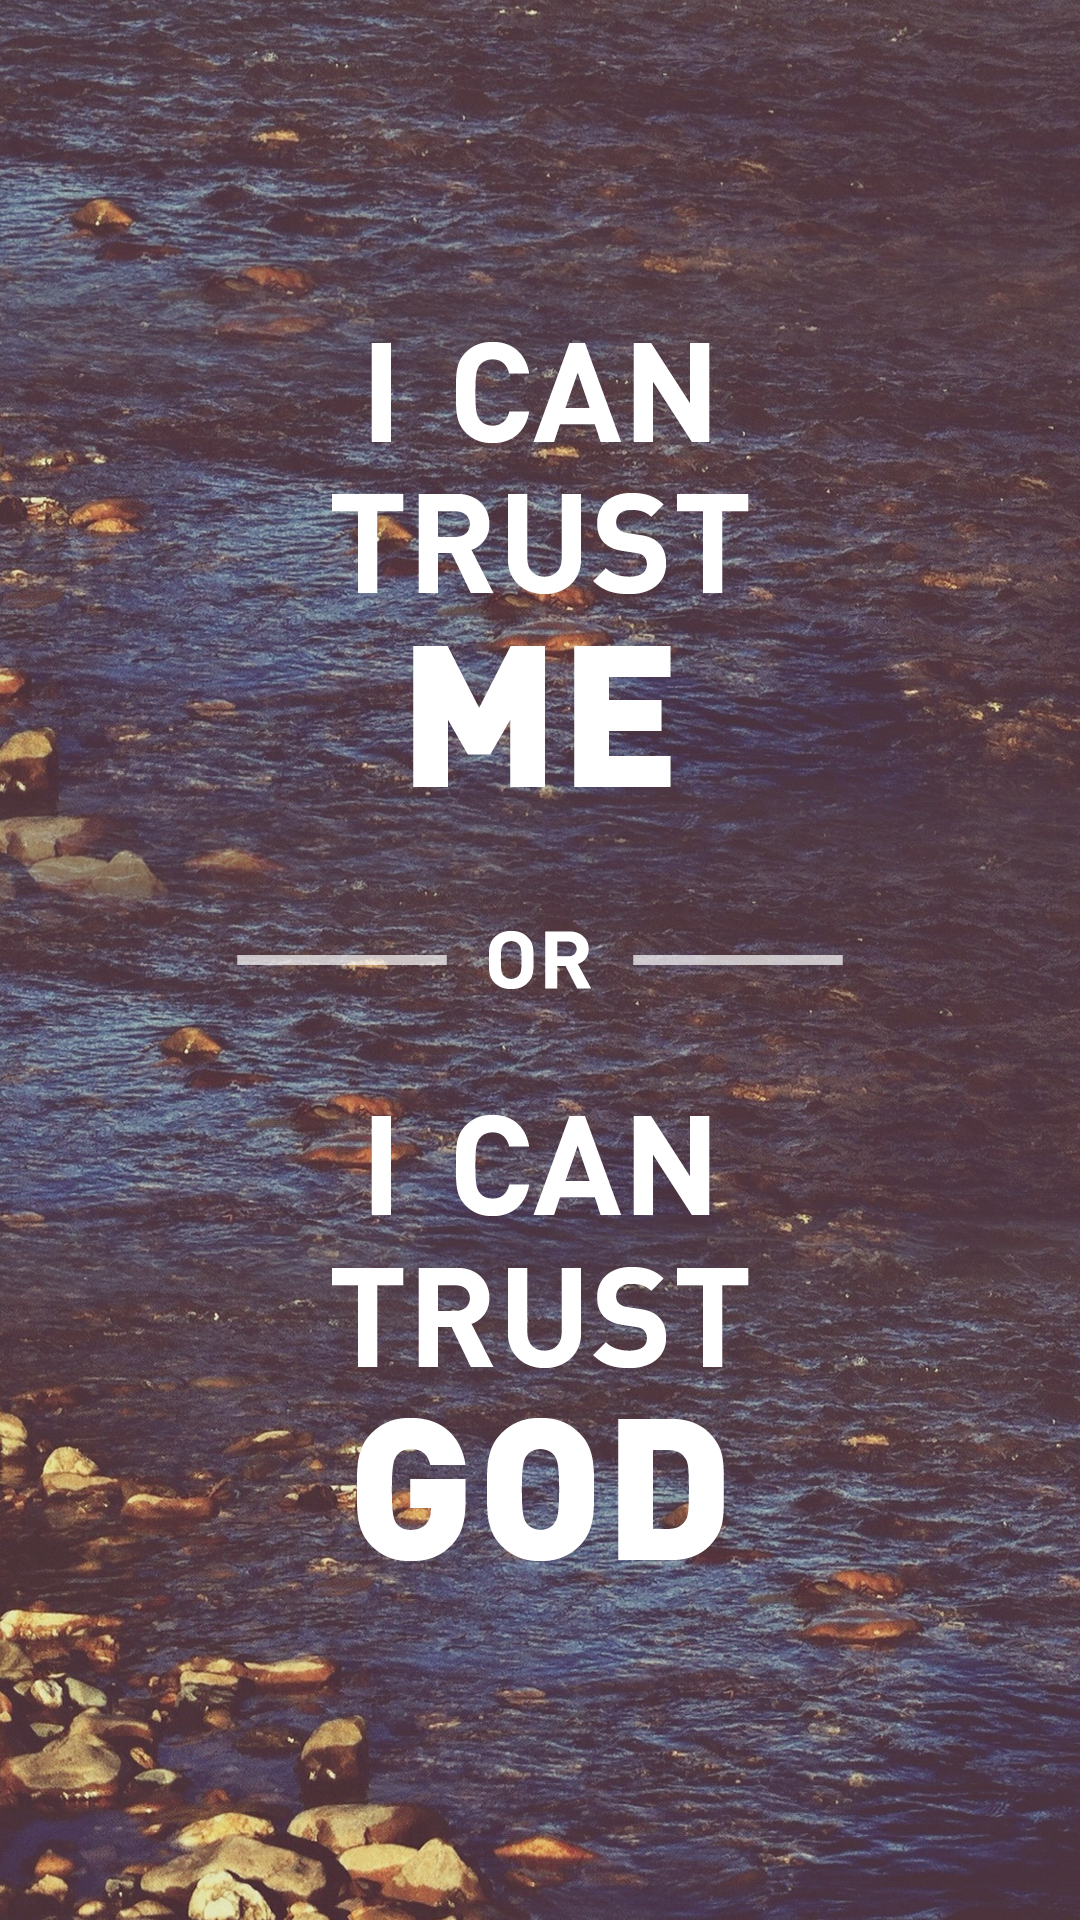 I can trust me or I can trust God